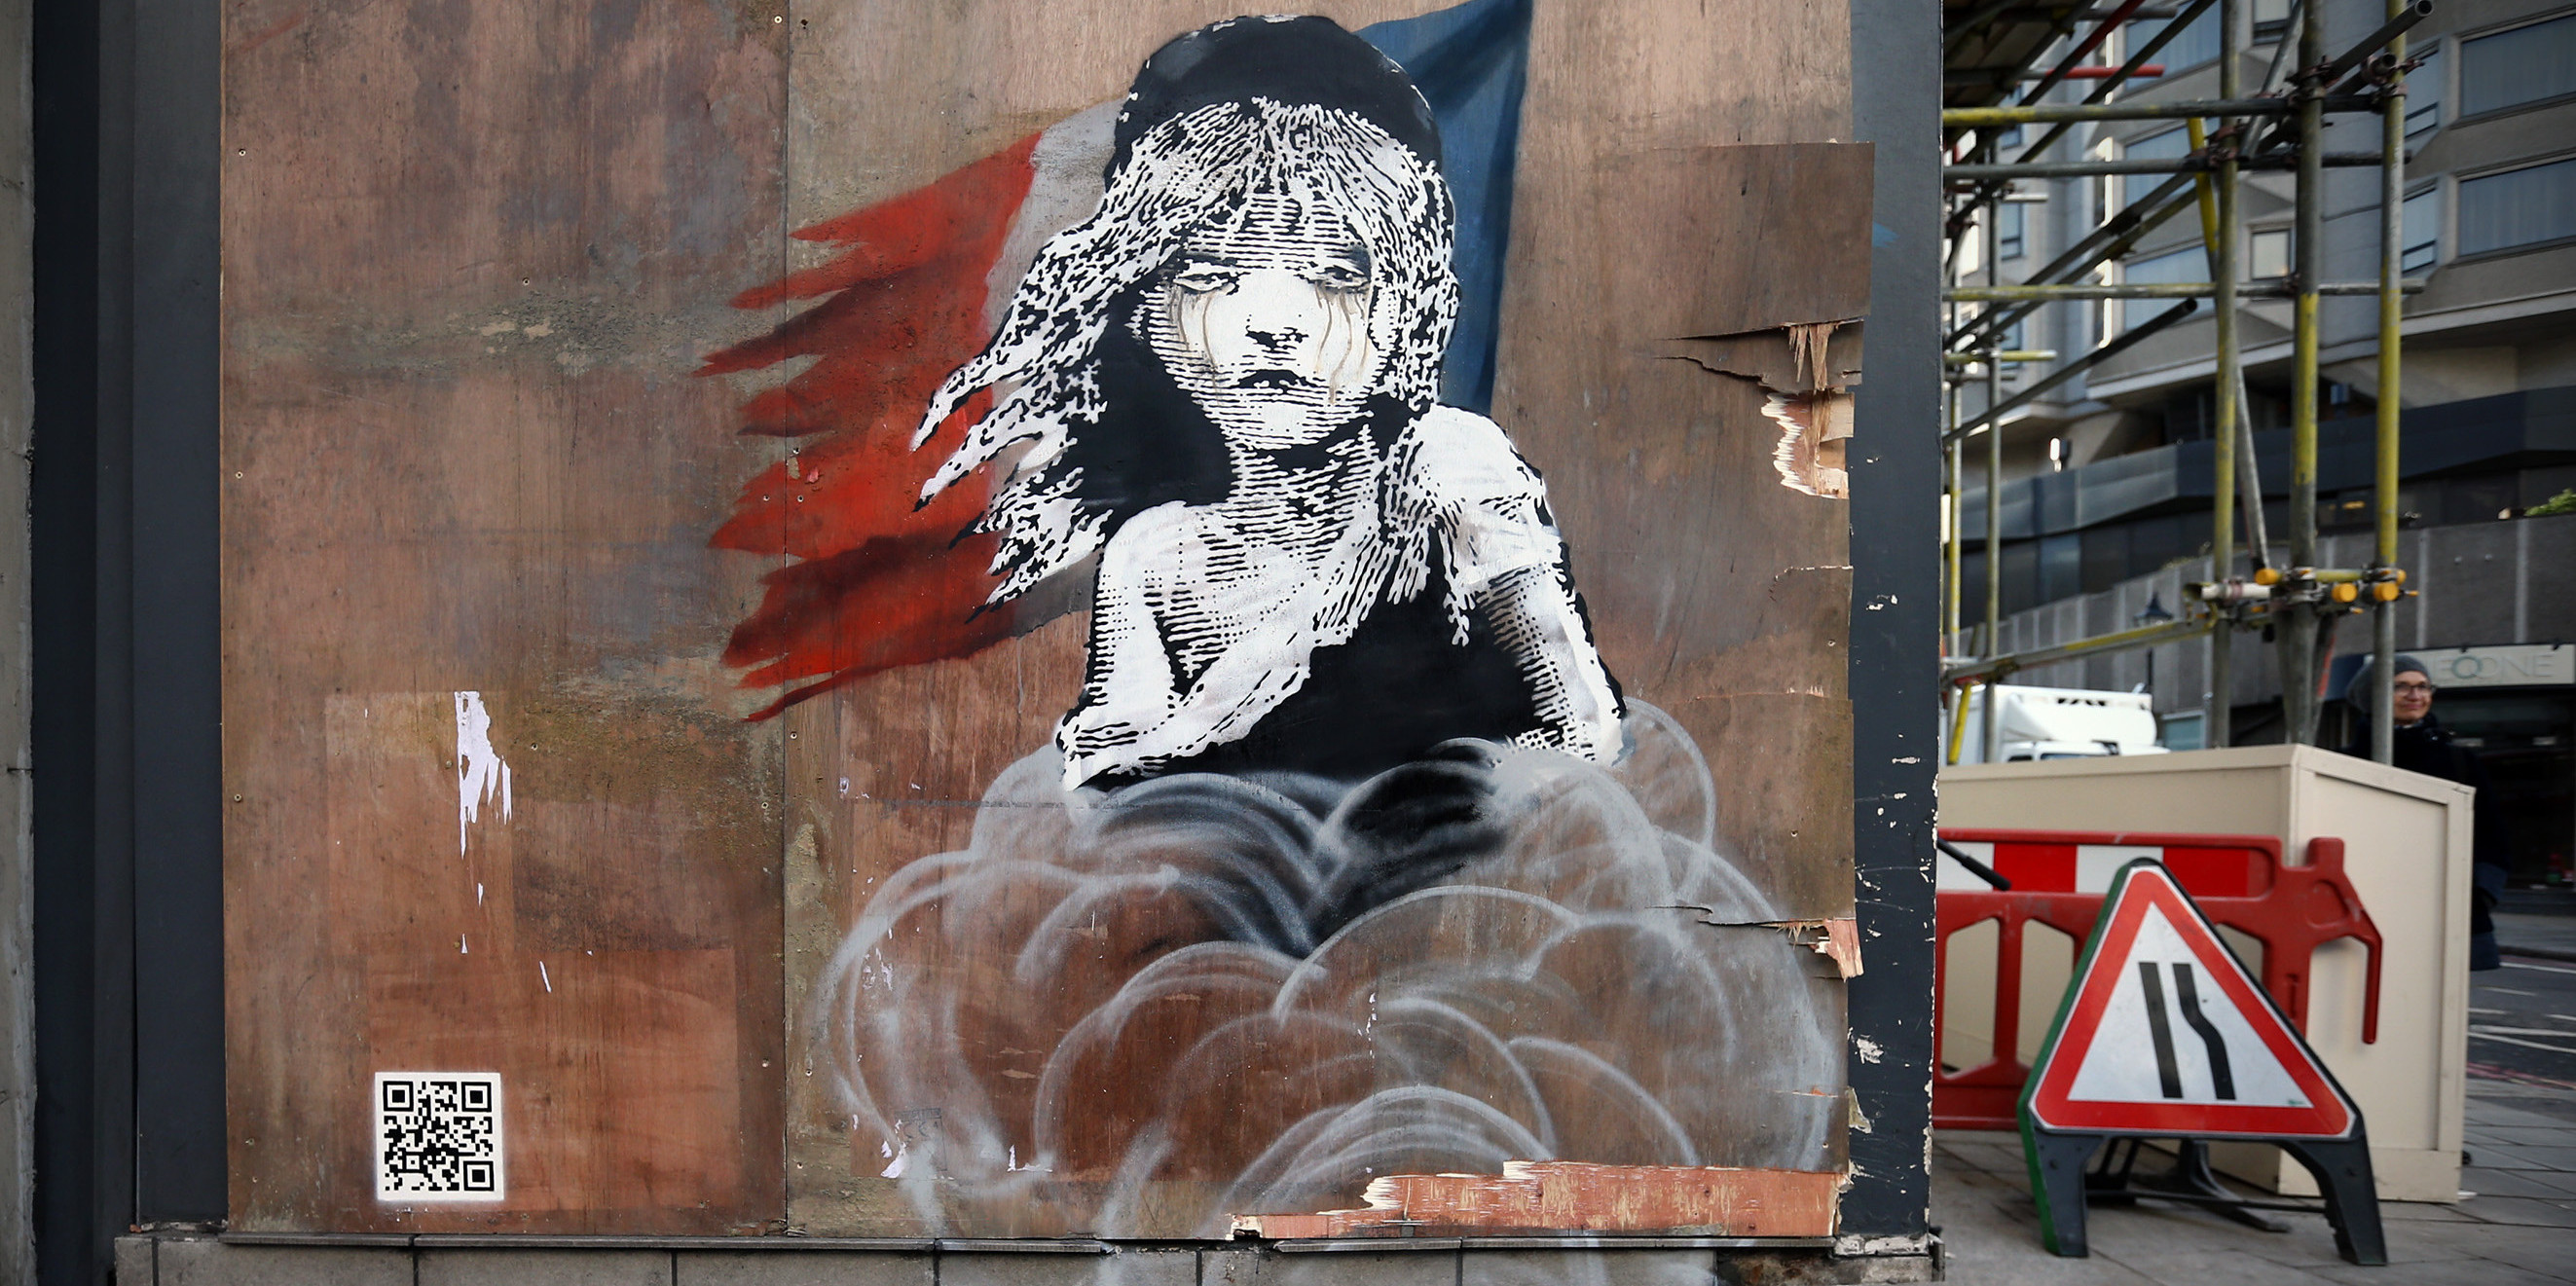 A New Banksy Appears Protesting Over The Use Of Teargas On Migrants In Calais